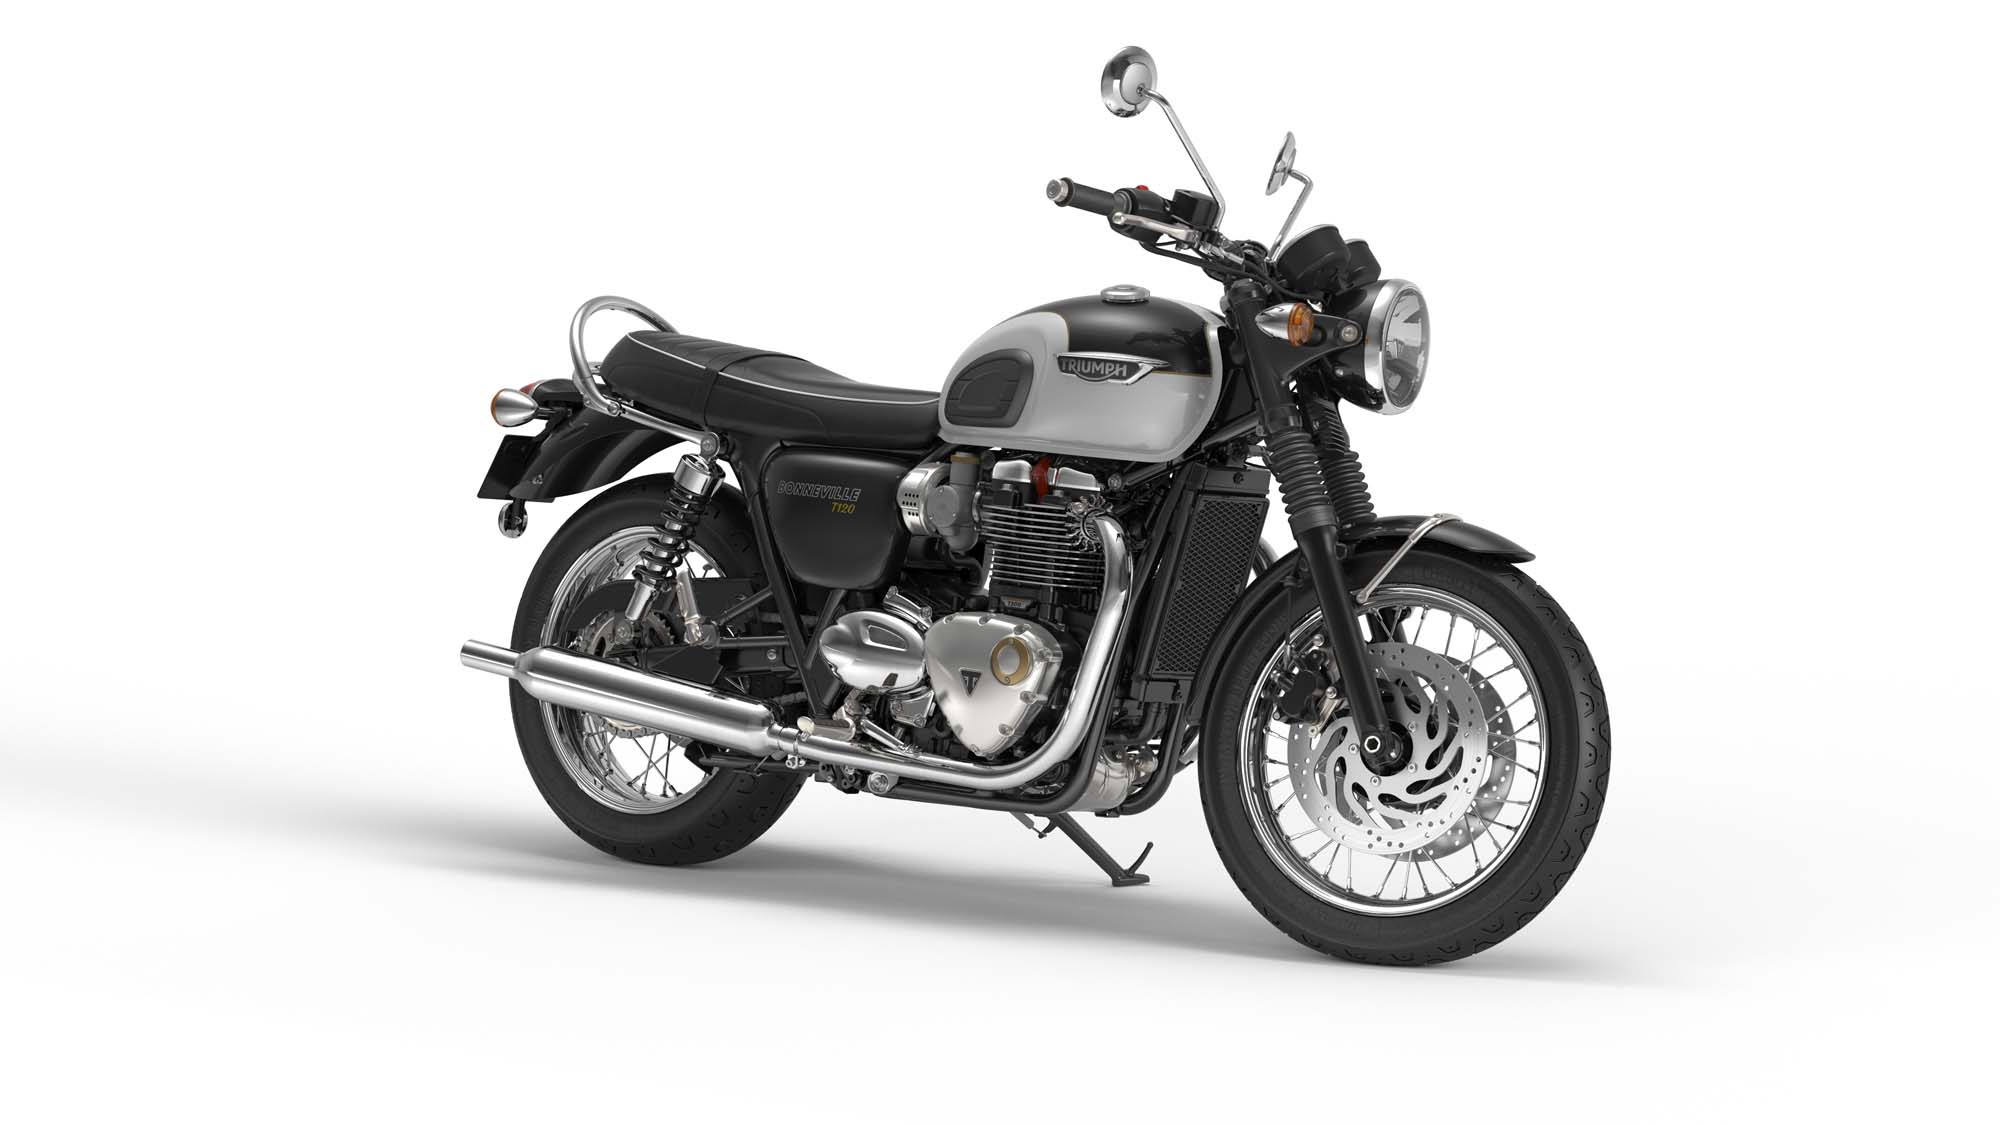 gebrauchte triumph bonneville t120 motorr der kaufen. Black Bedroom Furniture Sets. Home Design Ideas